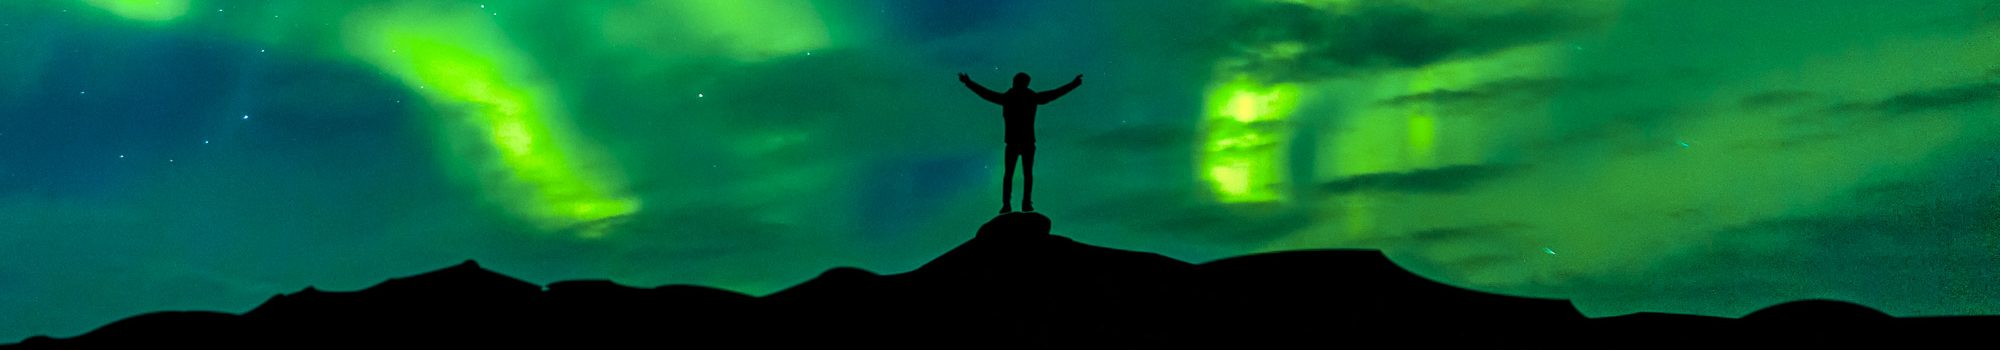 Aurora borealis with silhouette standing man